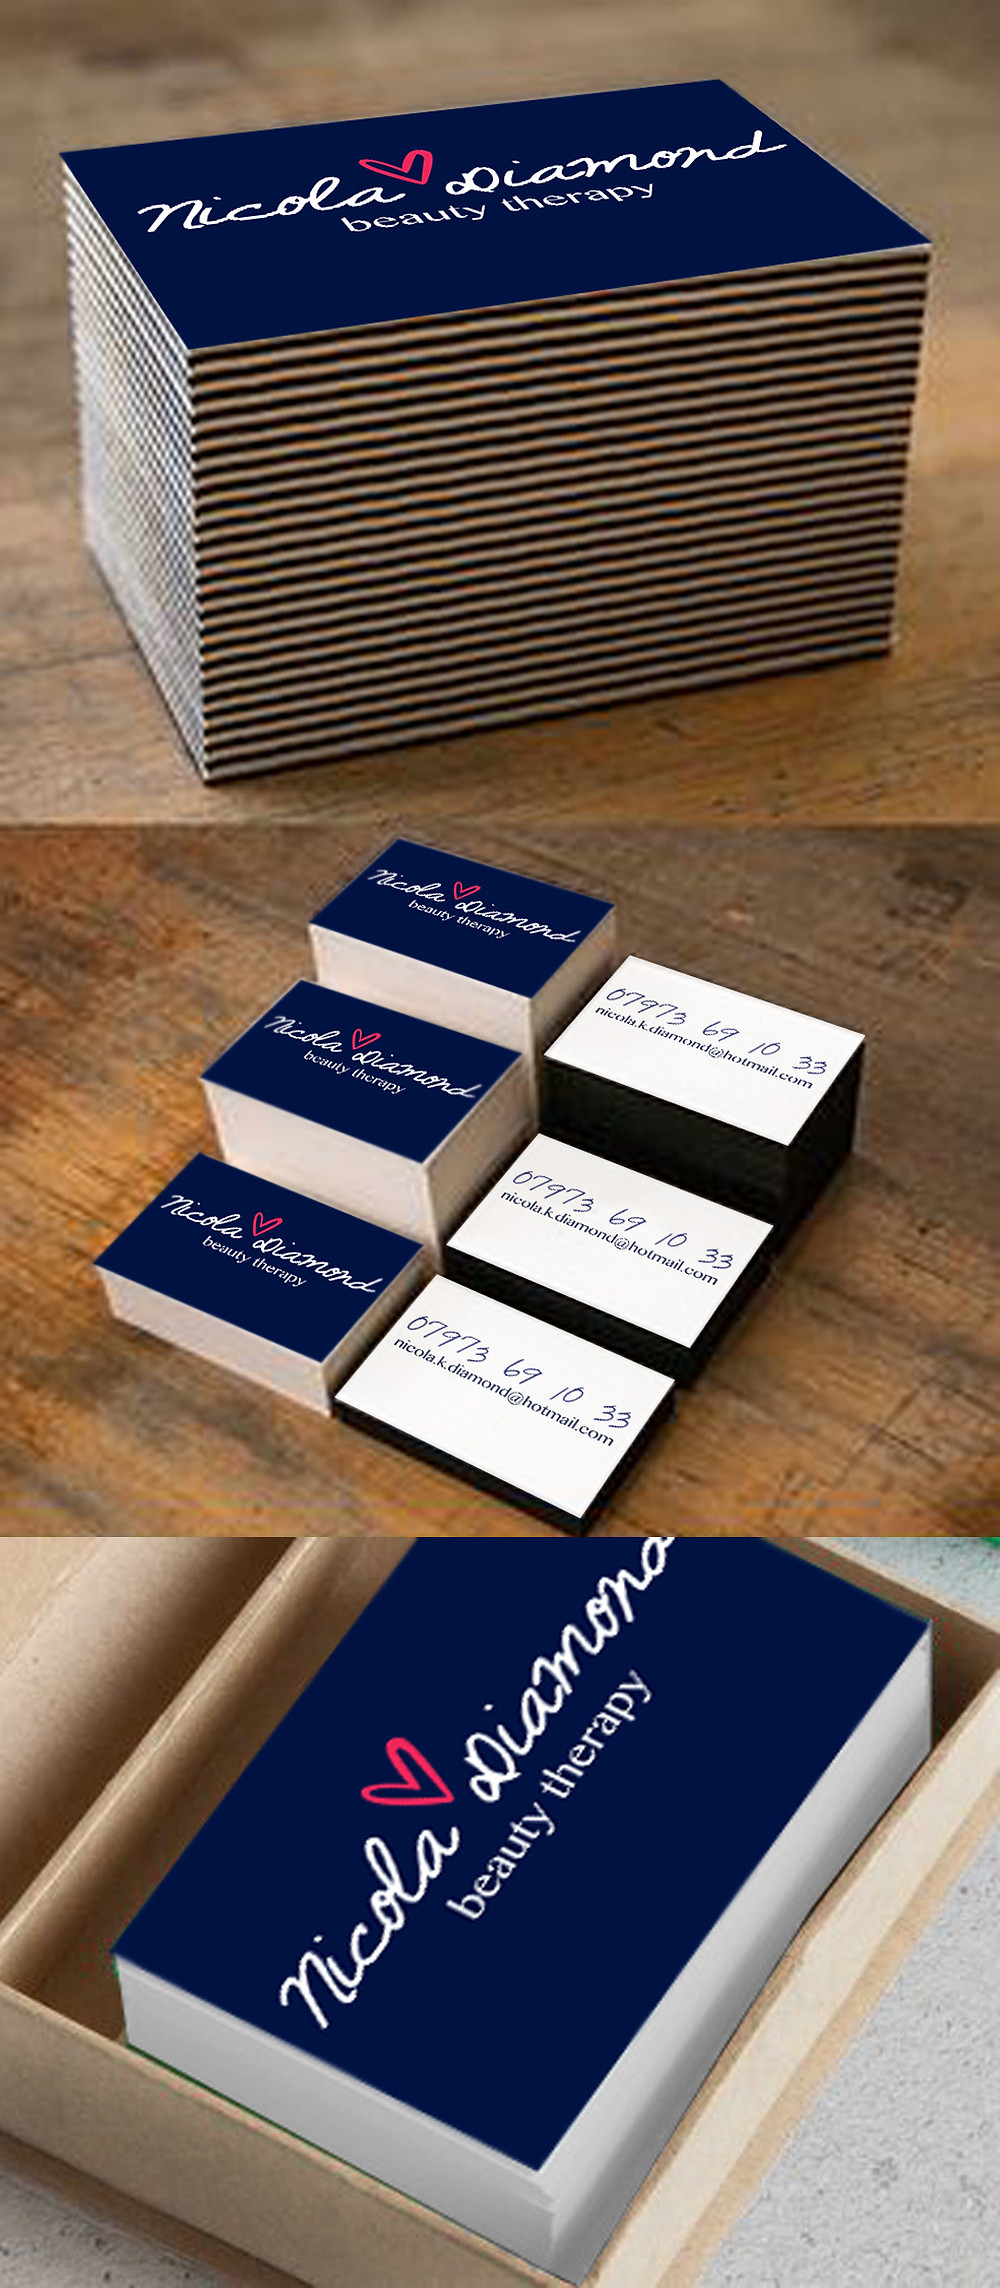 ND BUSINESS CARDS.jpg